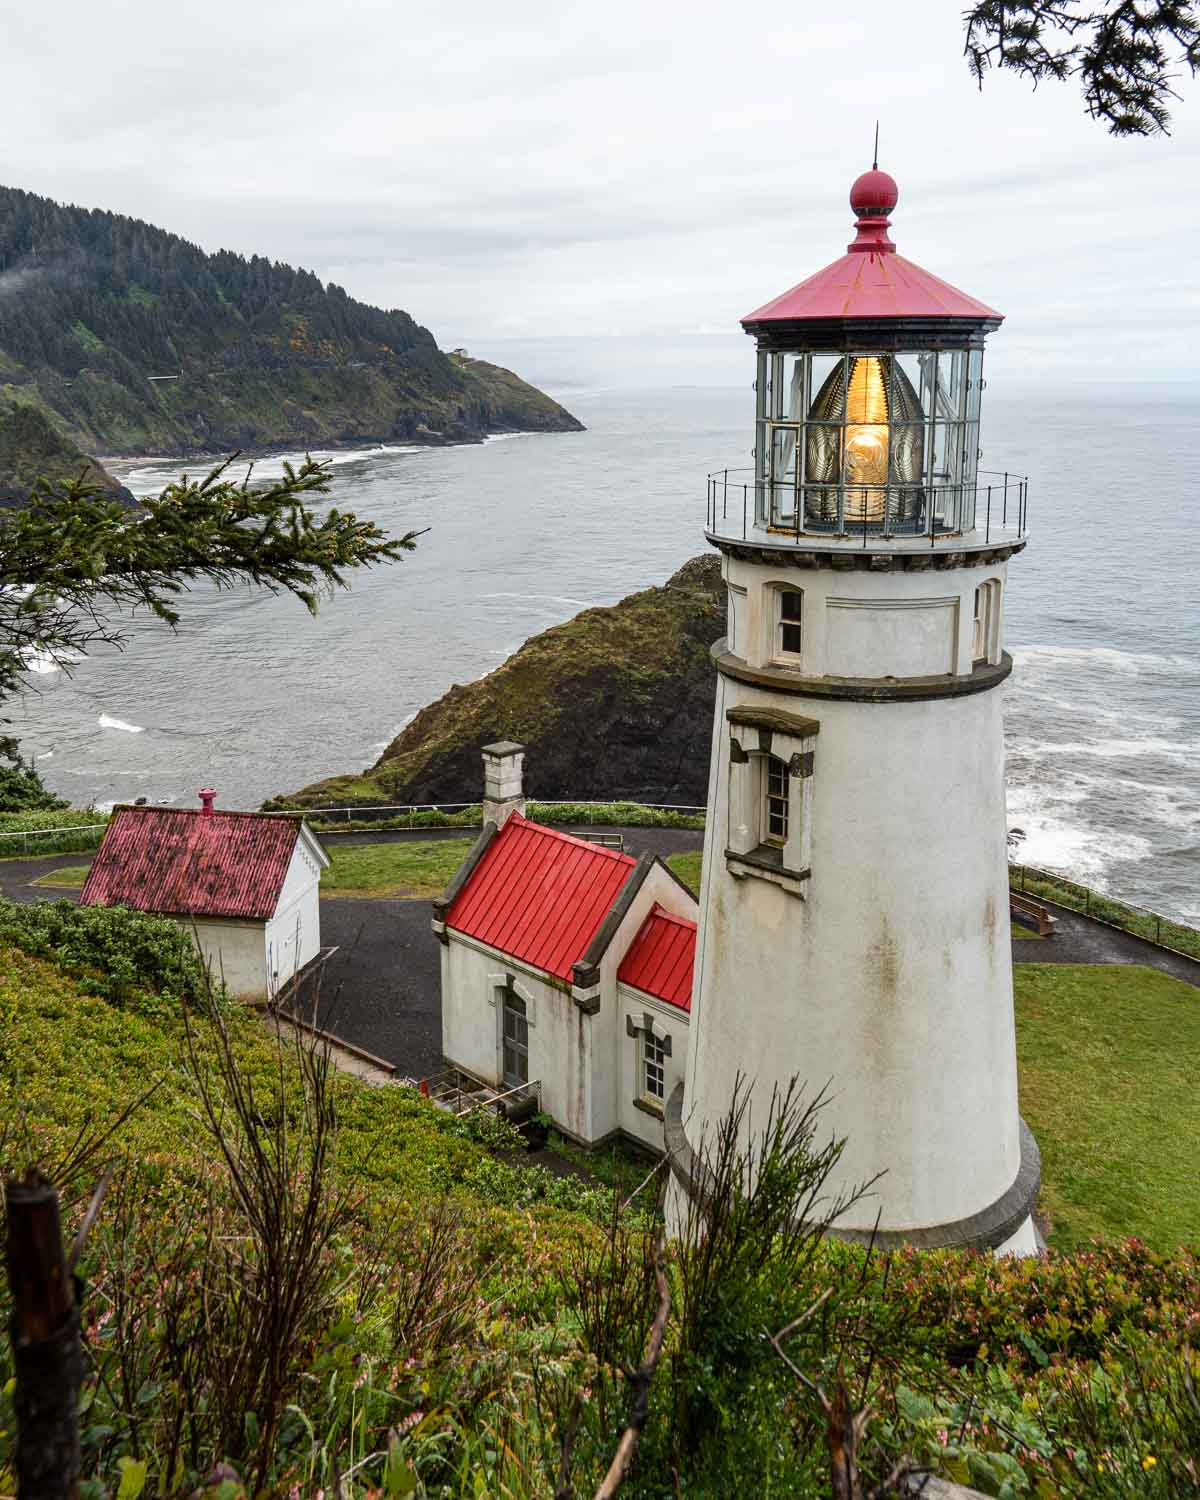 The Haceta Head lighthouse on a bluff